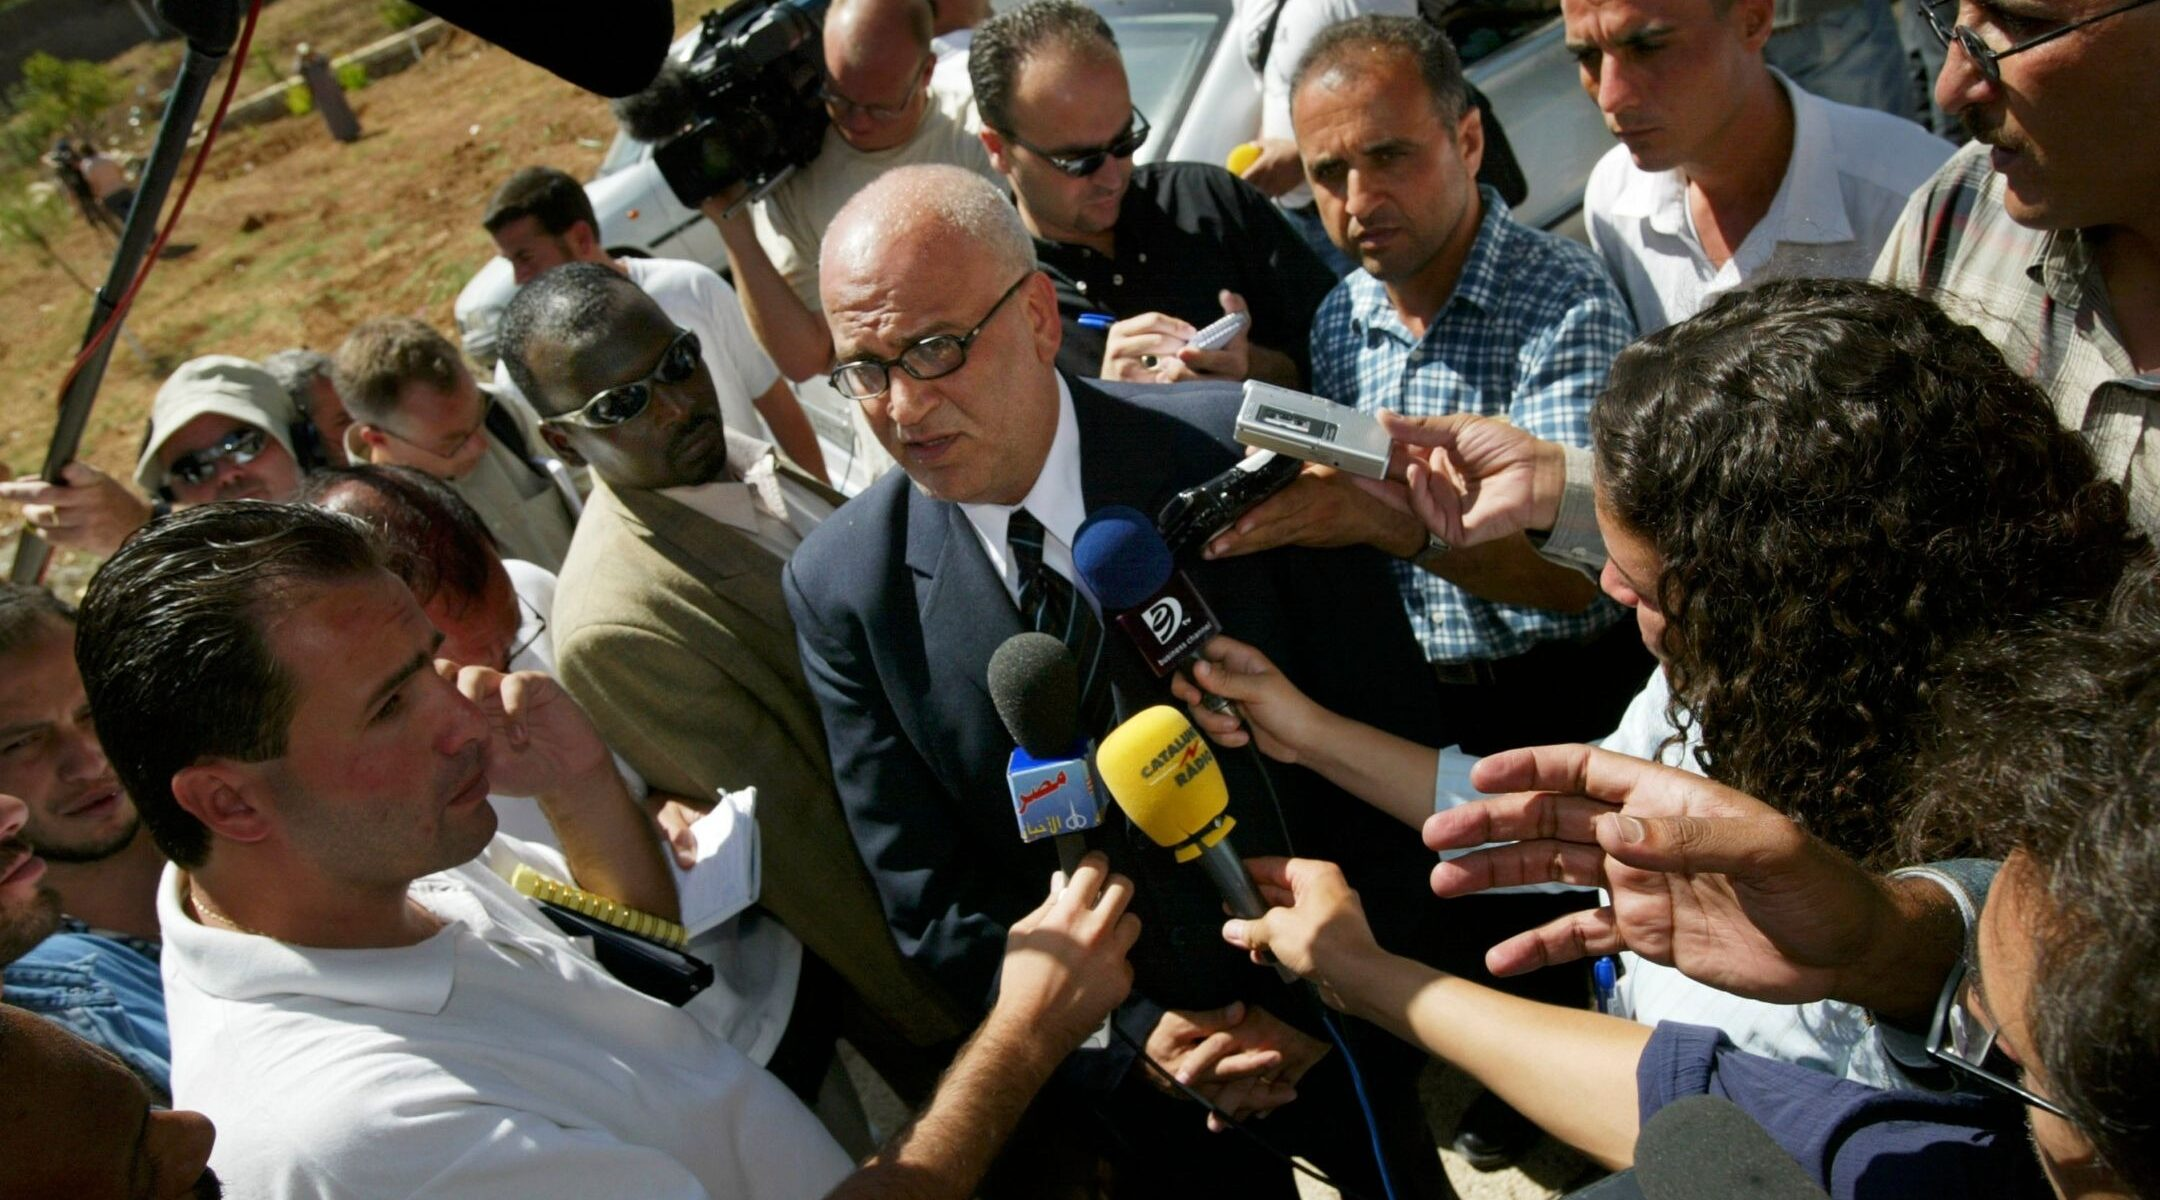 Palestinian Authority parliament member Saeb Erekat talks with the press before a meeting at the Palestinian parliament in Ramallah, Sept. 6, 2003. (Photo/JTA-Paula Bronstein-Getty Images)